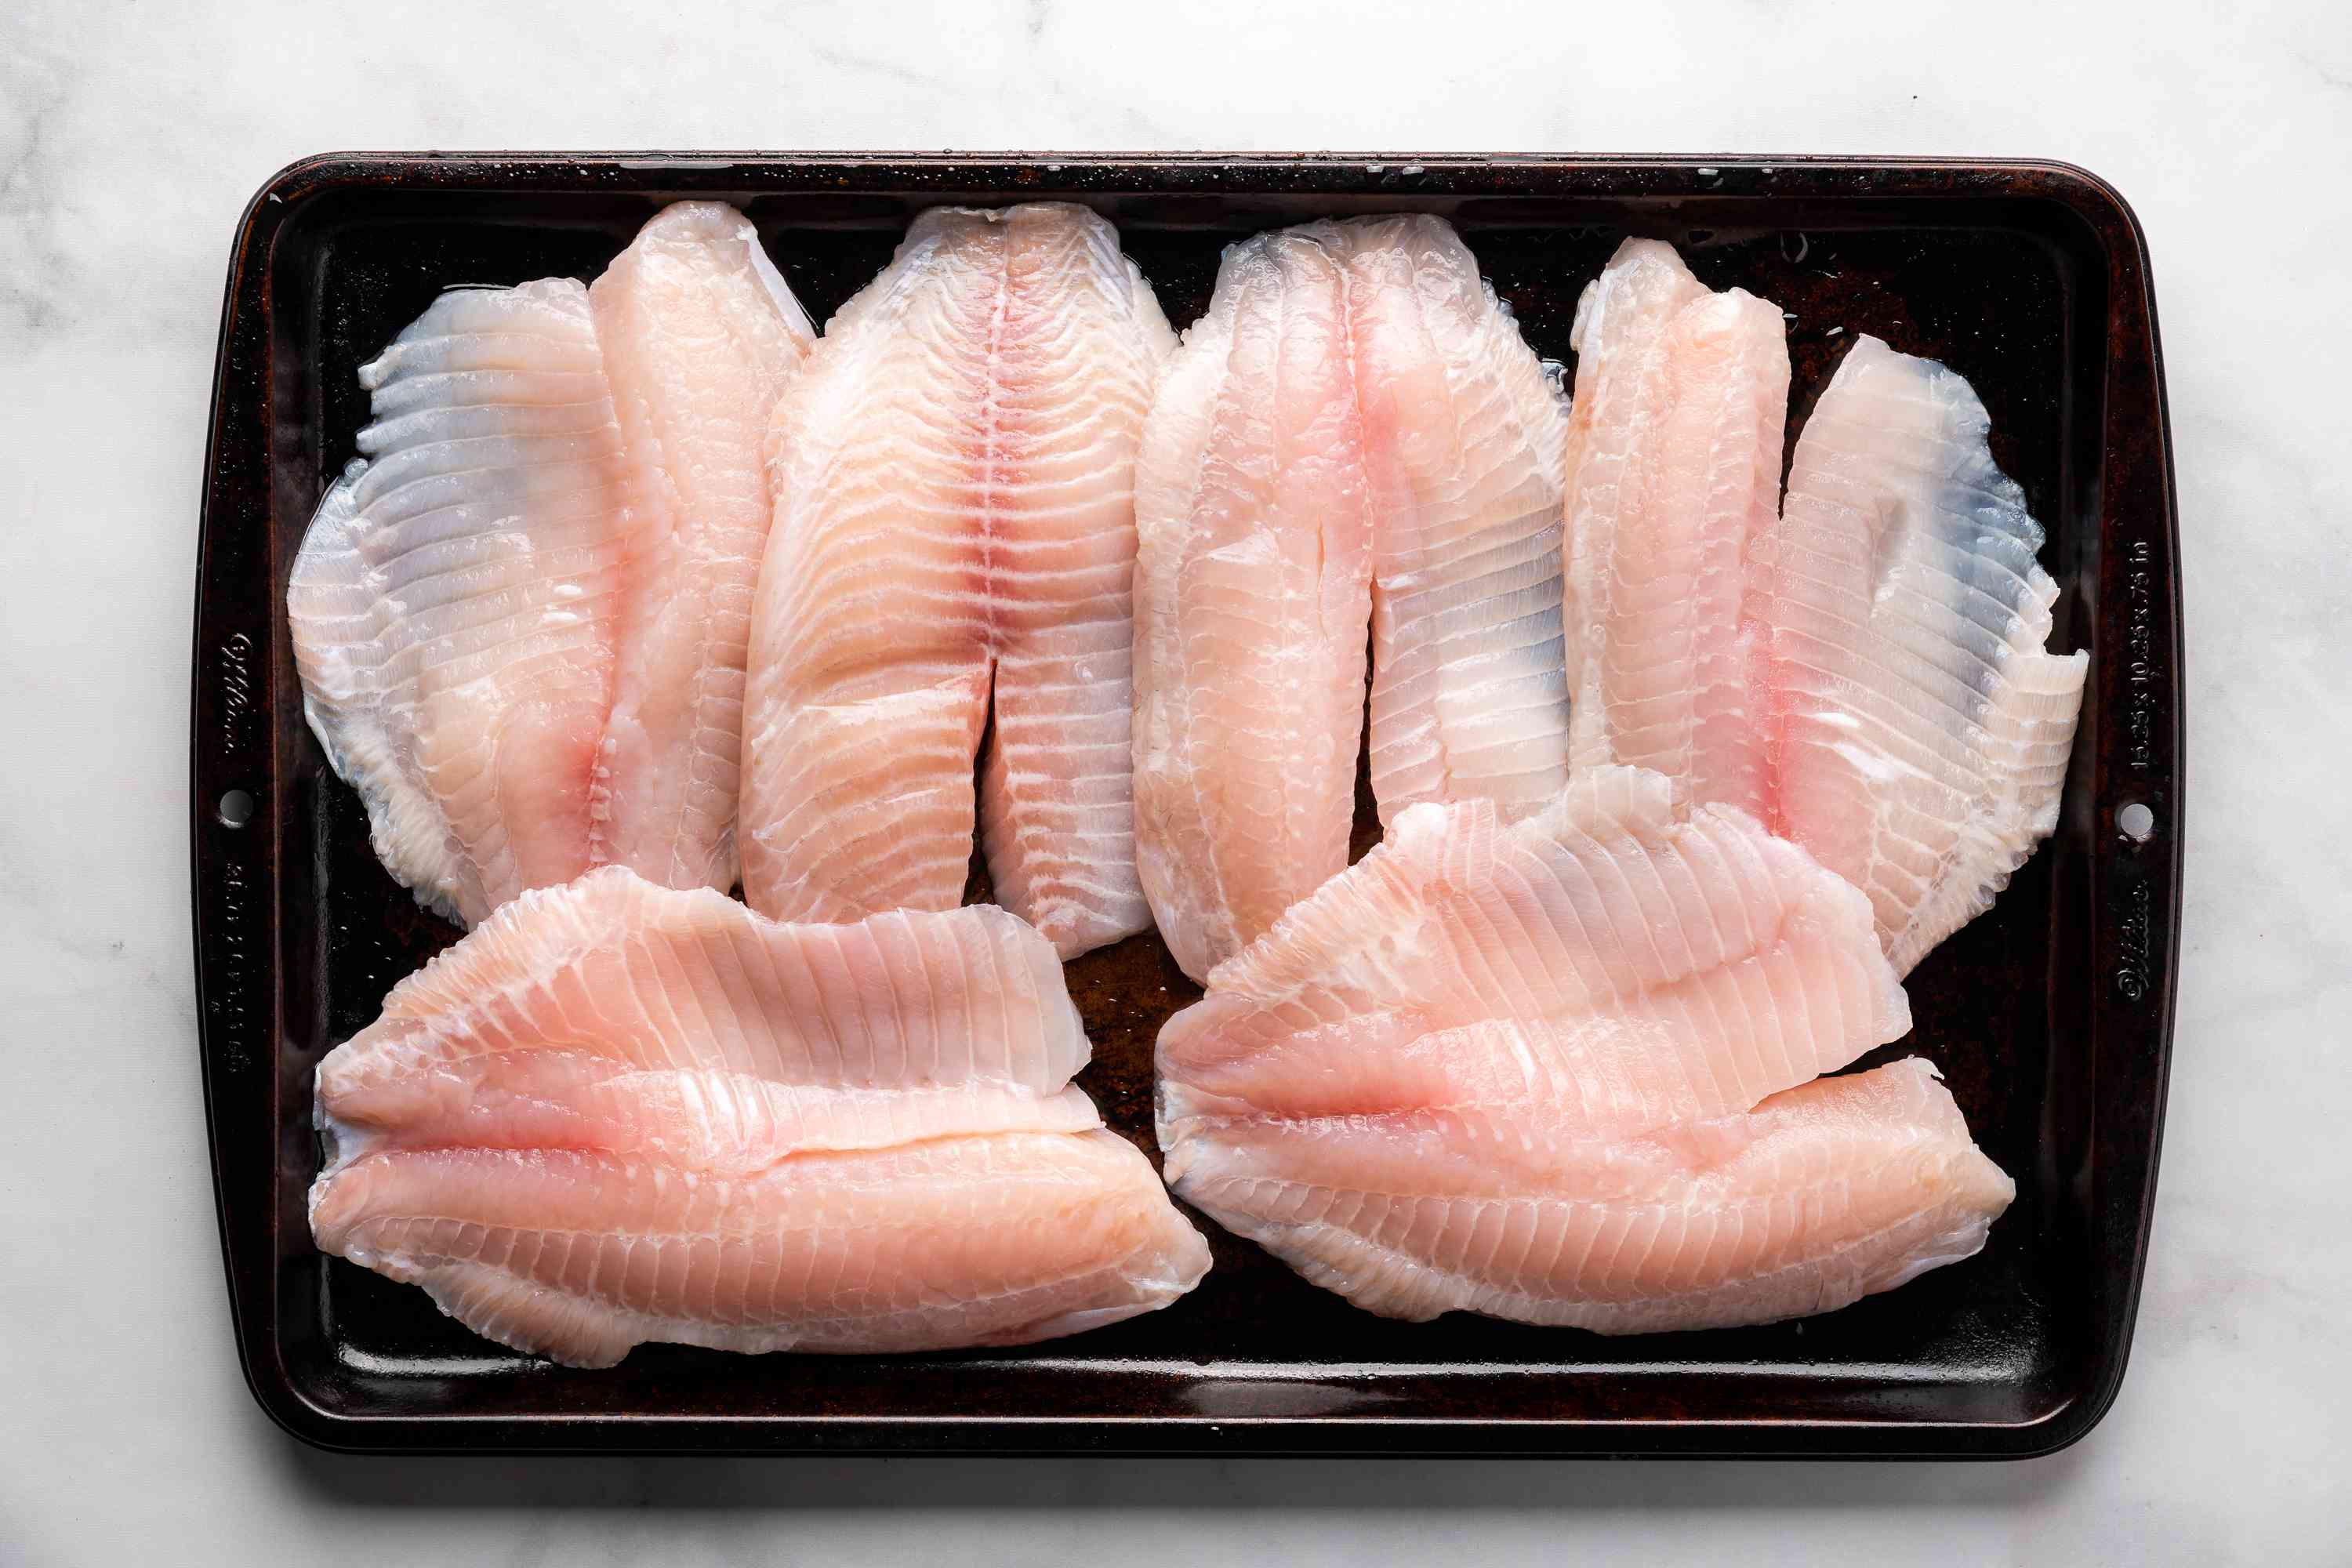 Wash the fish and remove all the bones, place on baking sheet